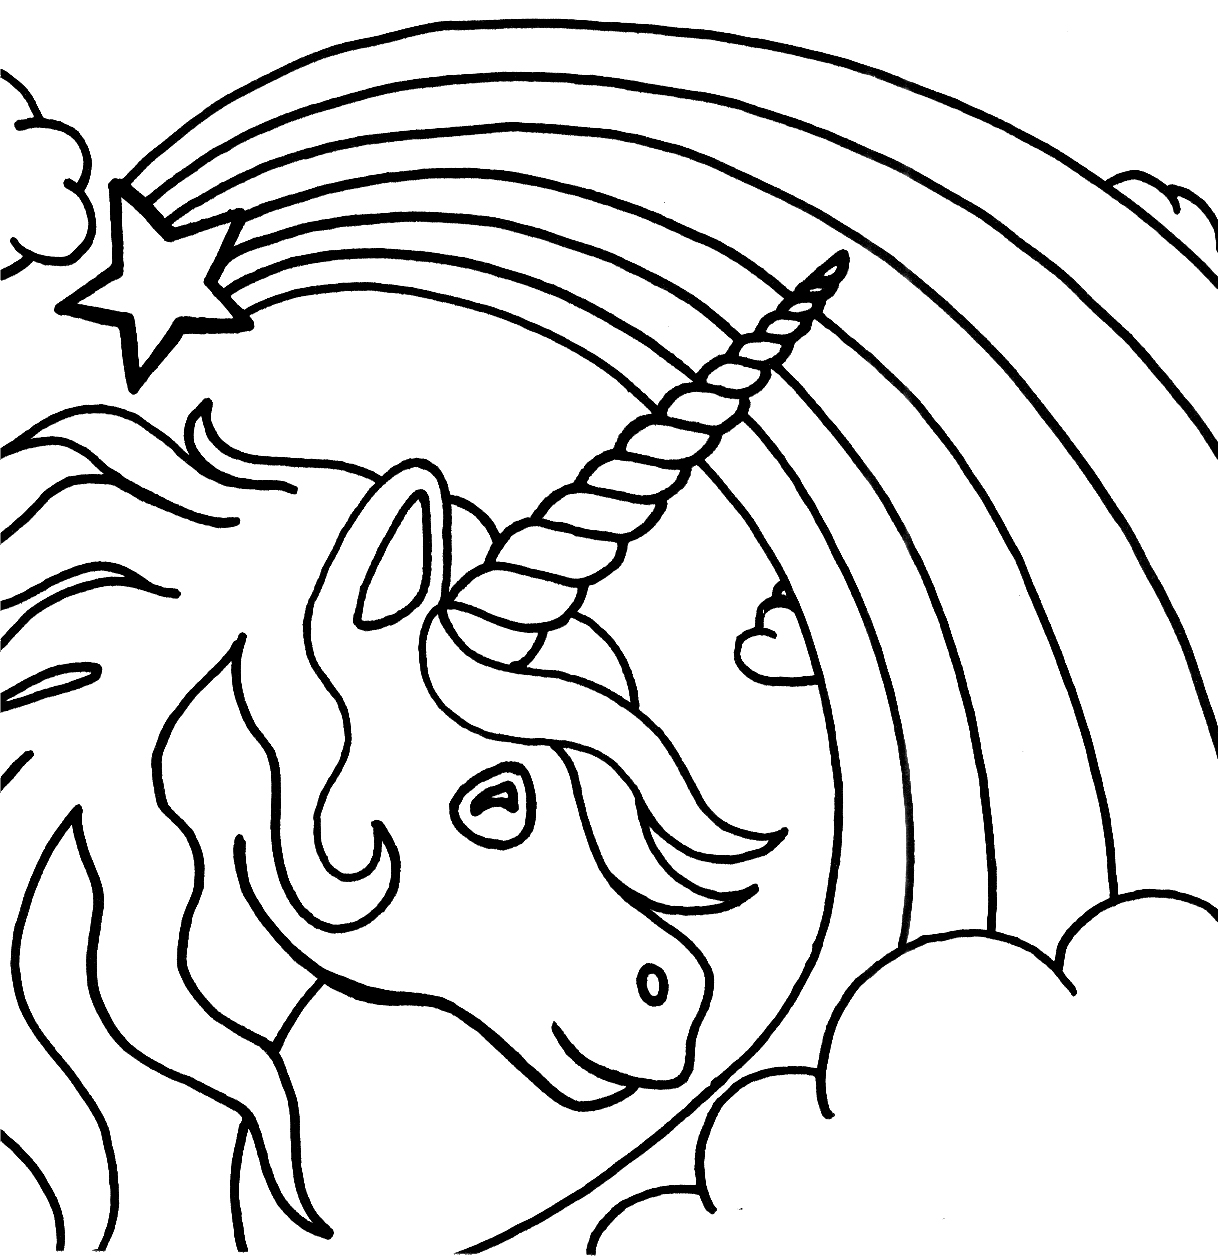 Fan image for printable unicorn colouring pages